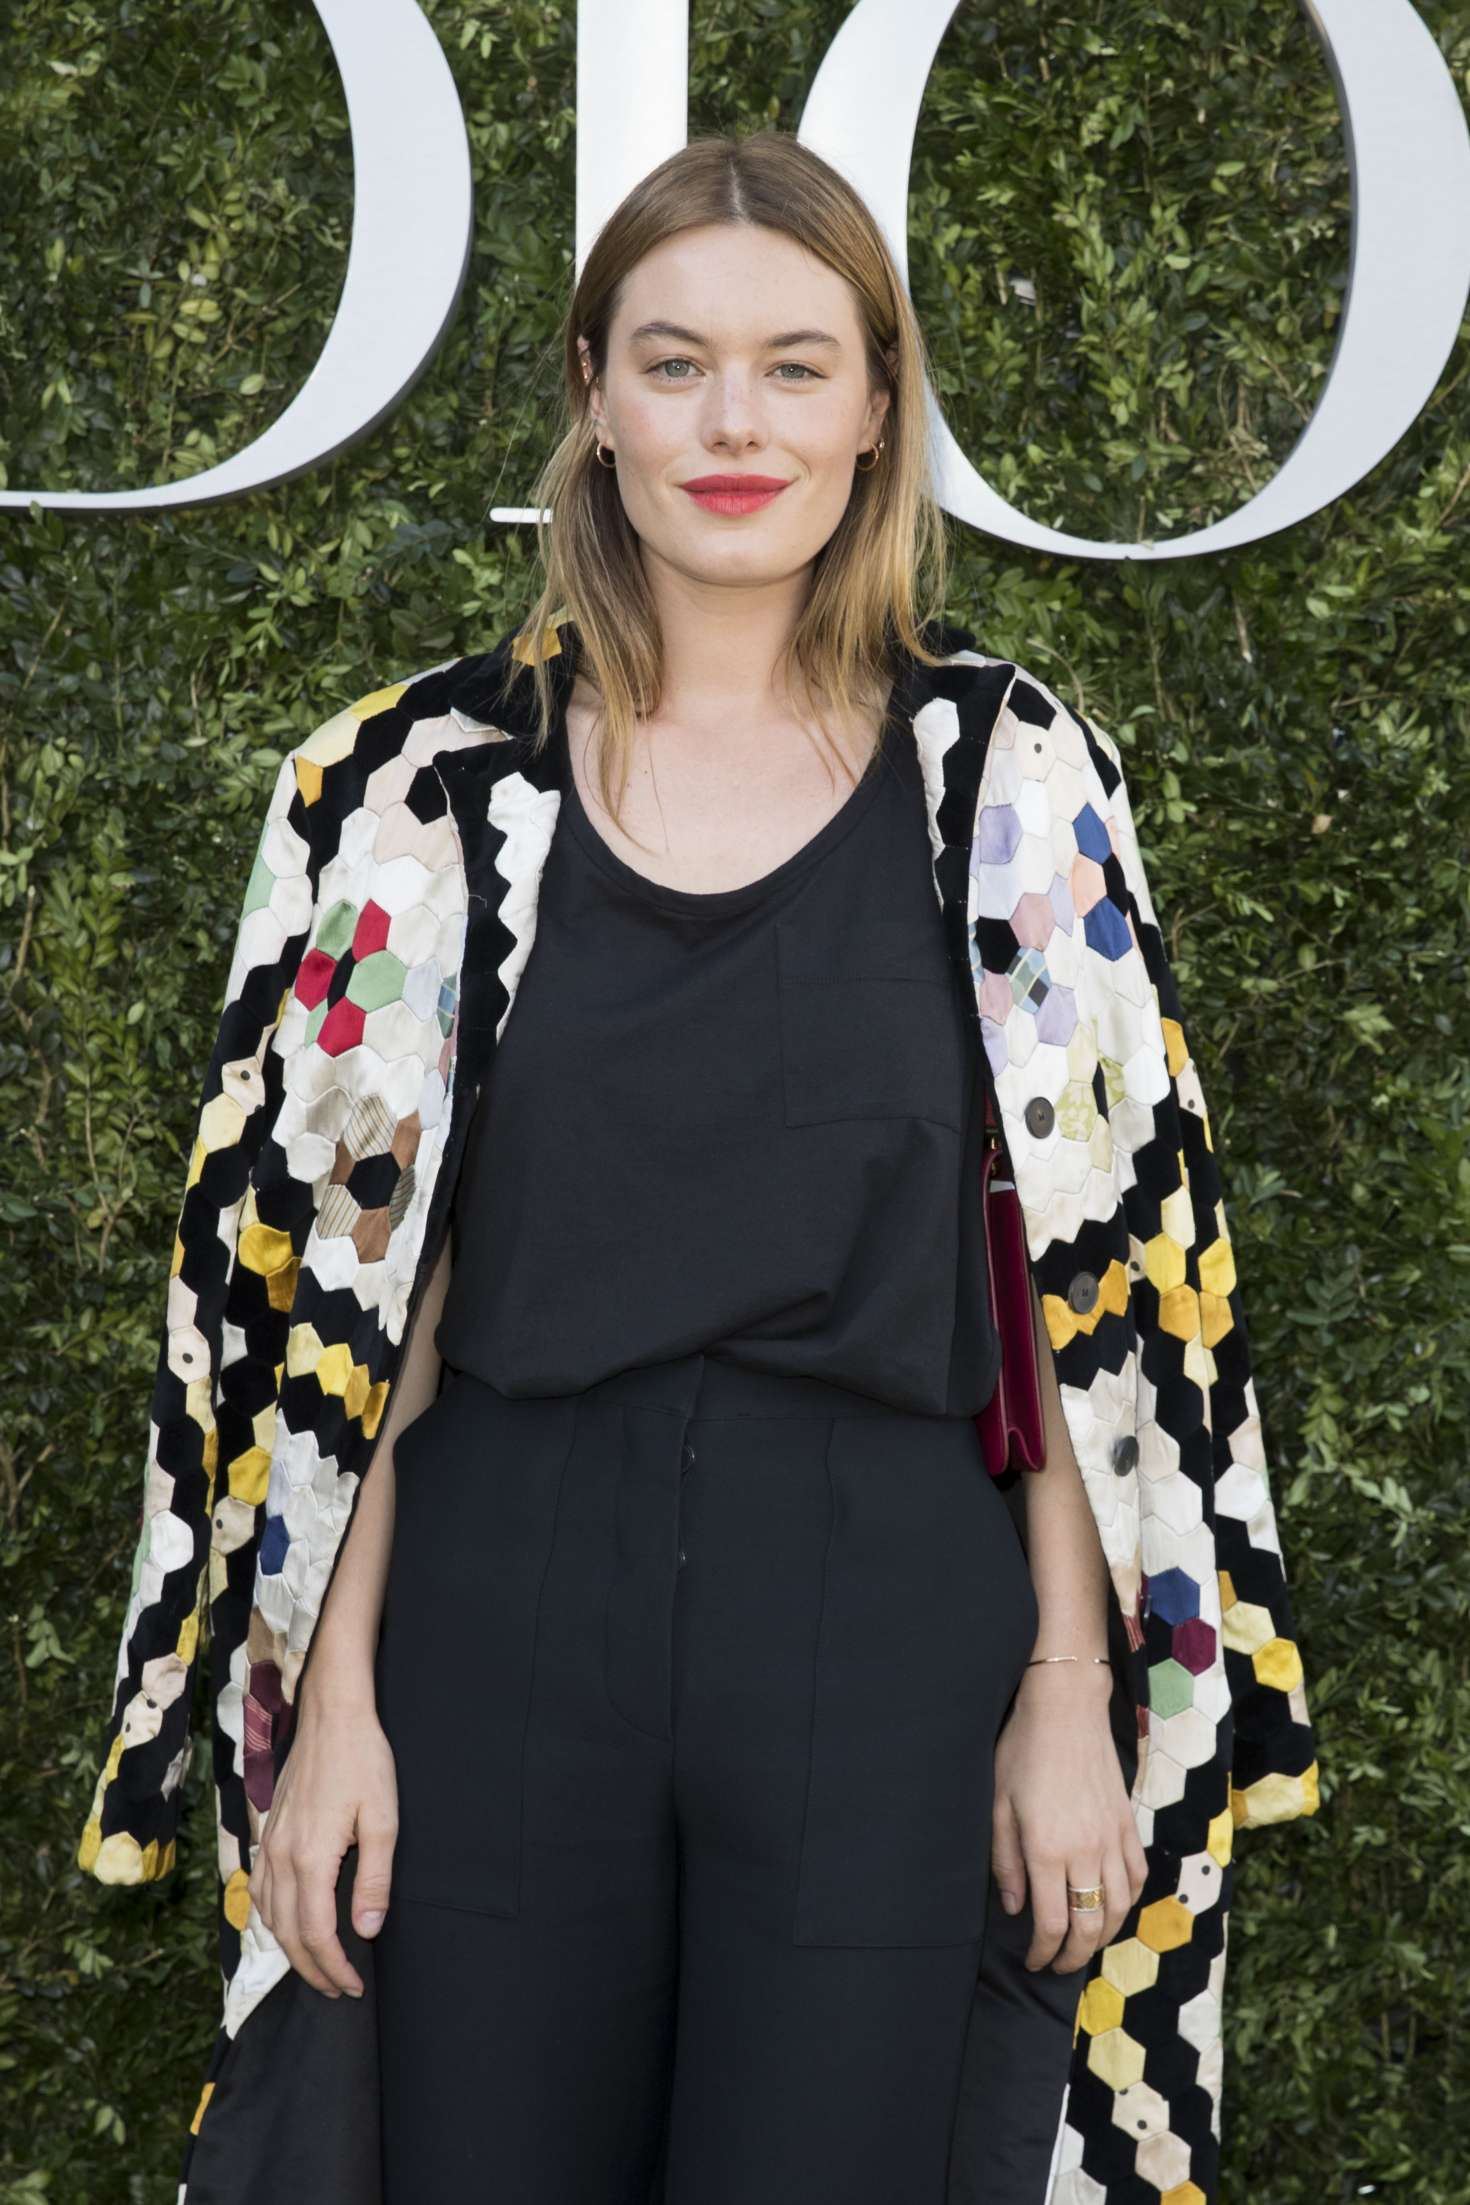 Camille Rowe - Christian Dior Photocall FW 2017 in Paris